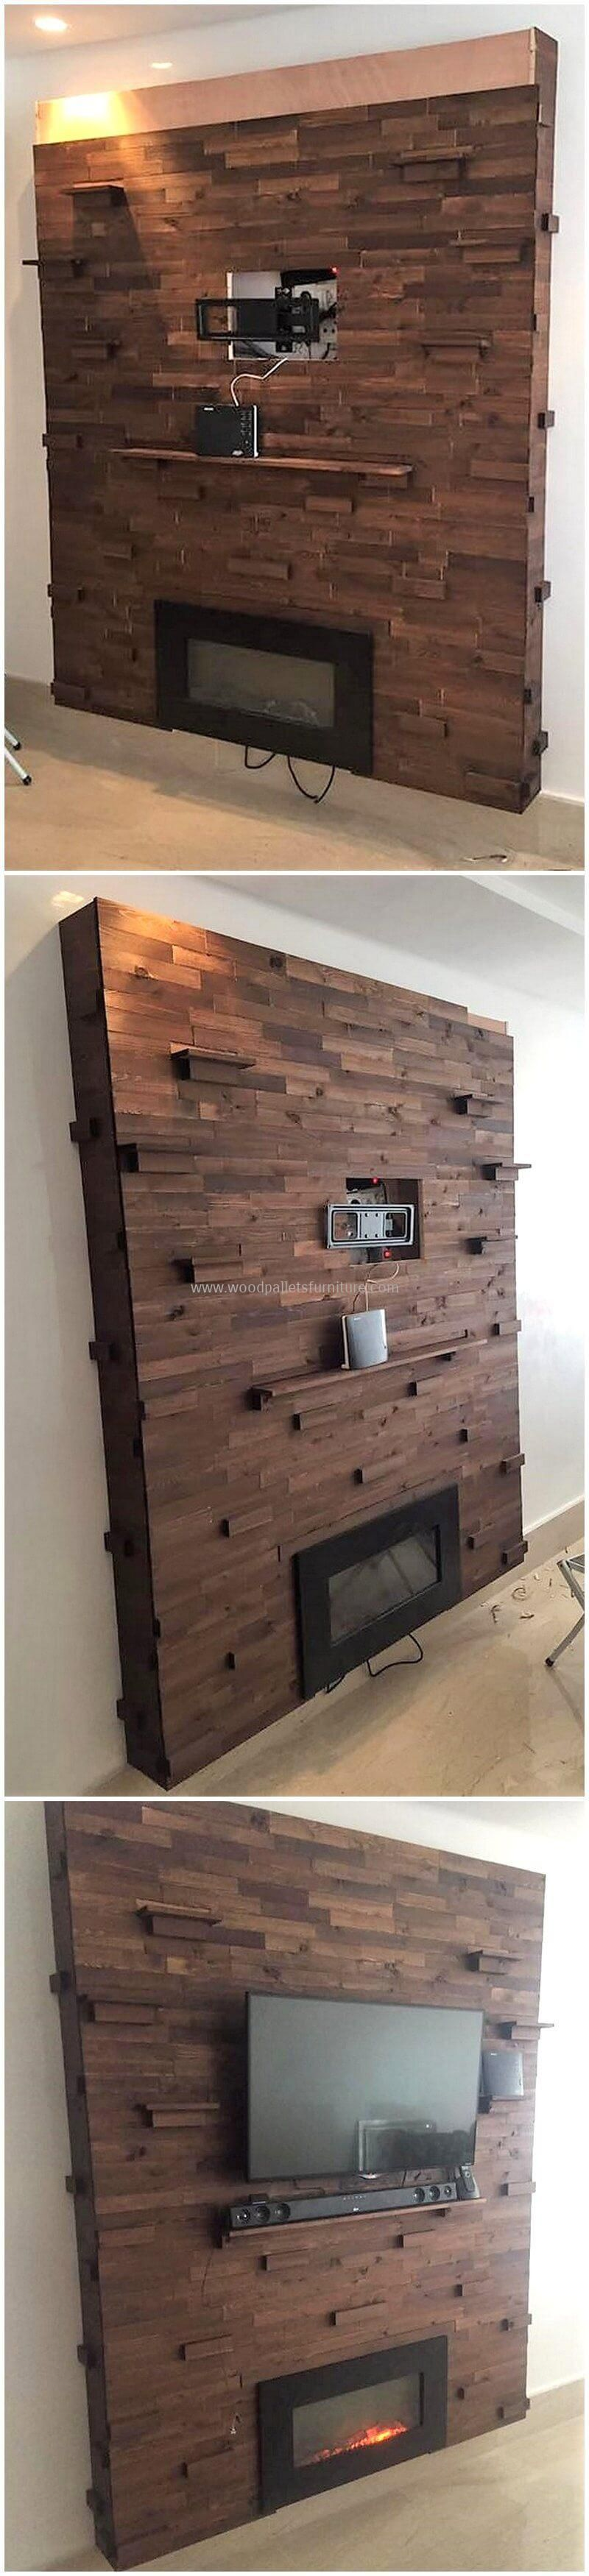 amazing ideas for wooden pallets repurposing wooden on pallet wall id=13745